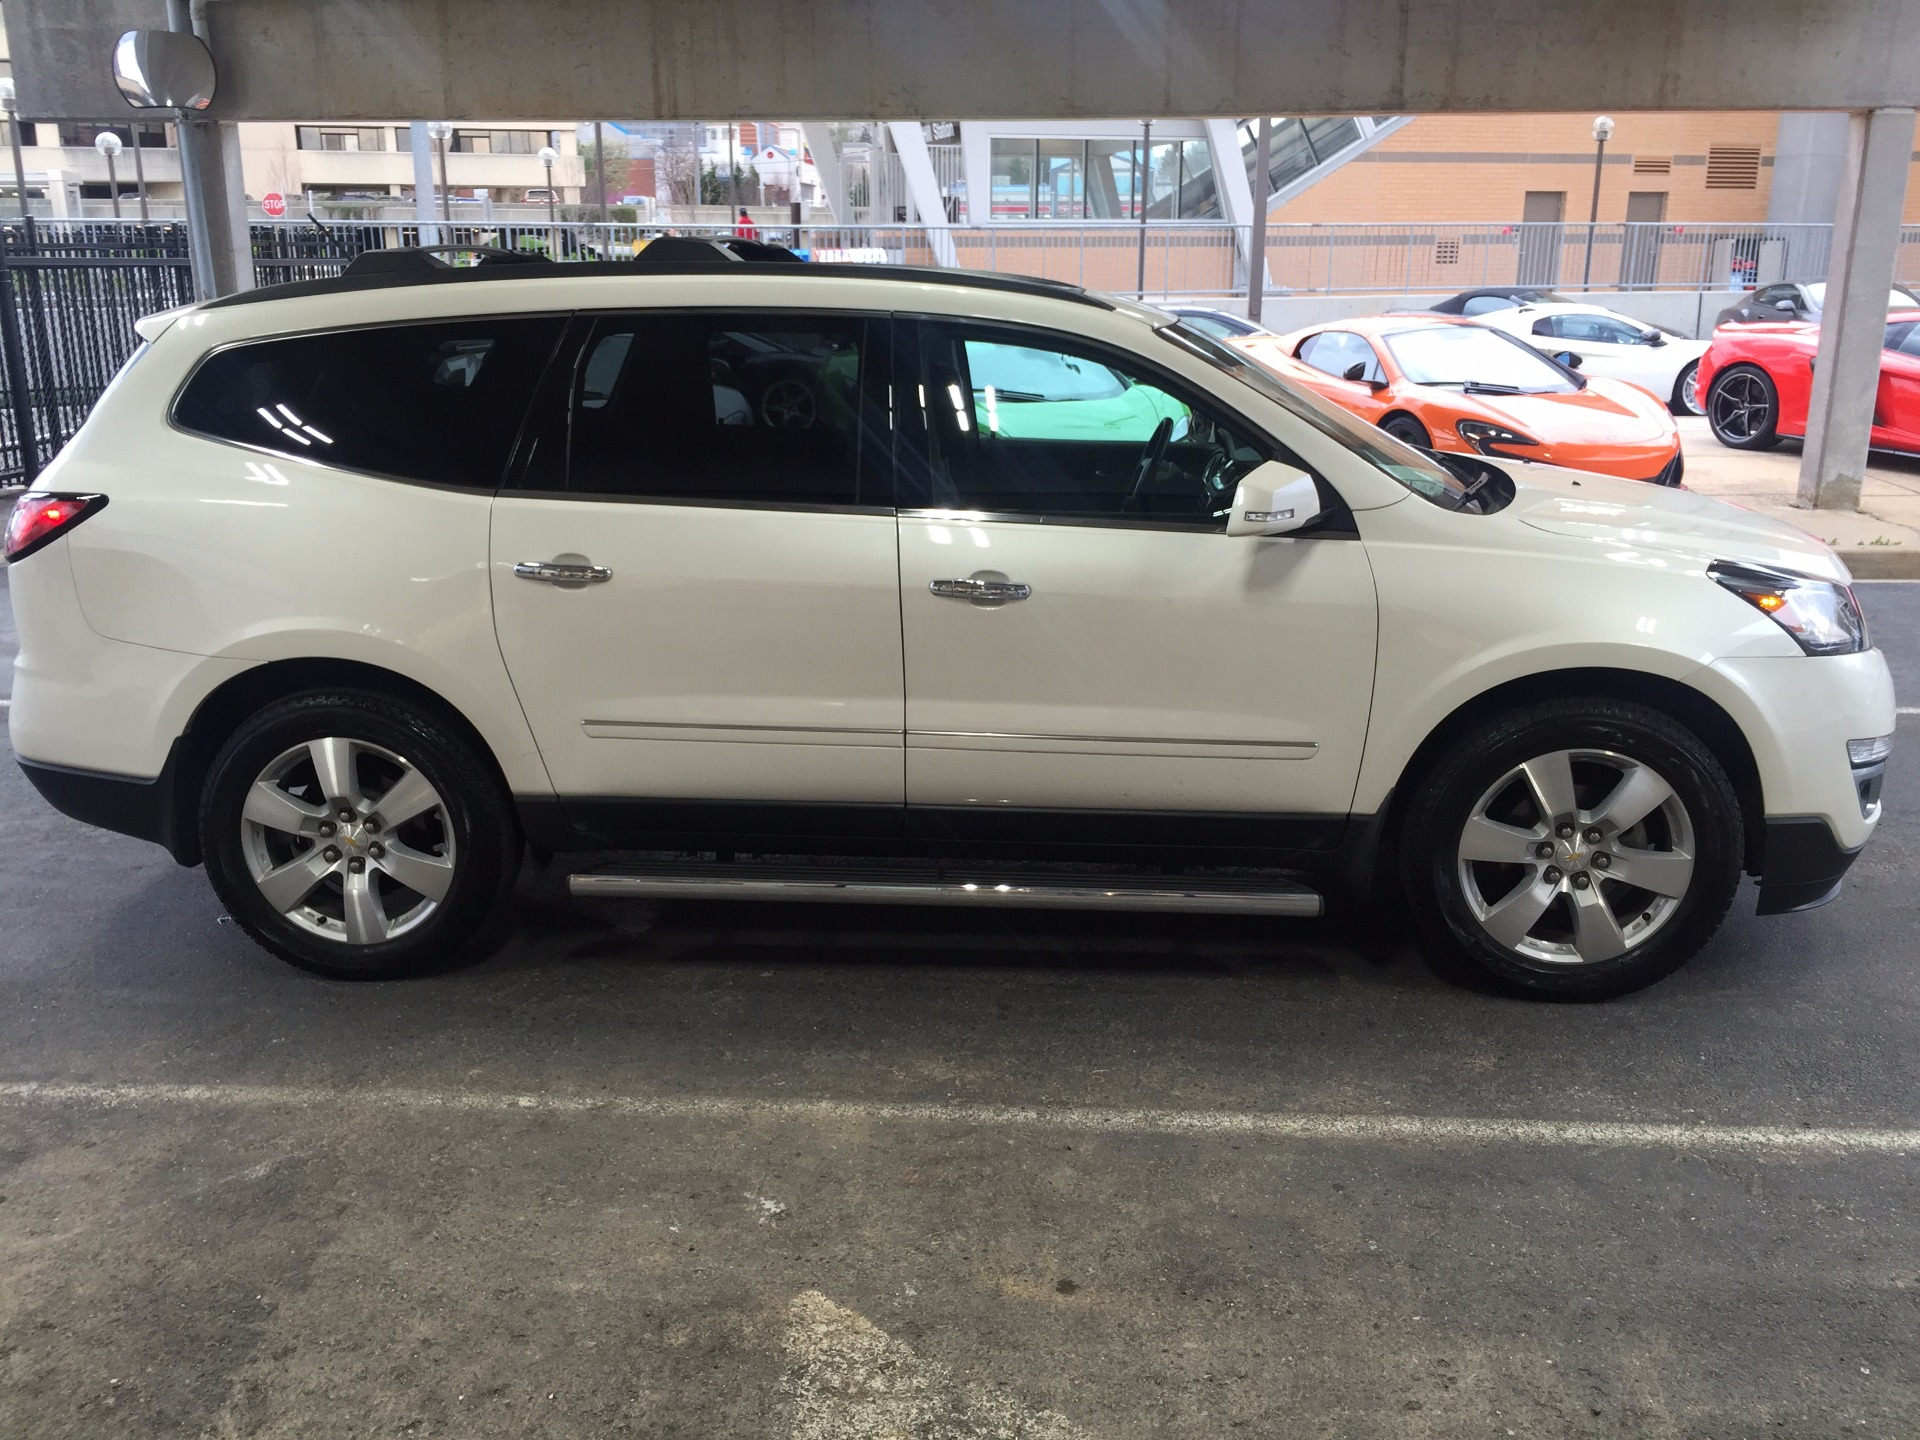 used 2015 chevrolet traverse for sale in washington dc autos post. Black Bedroom Furniture Sets. Home Design Ideas